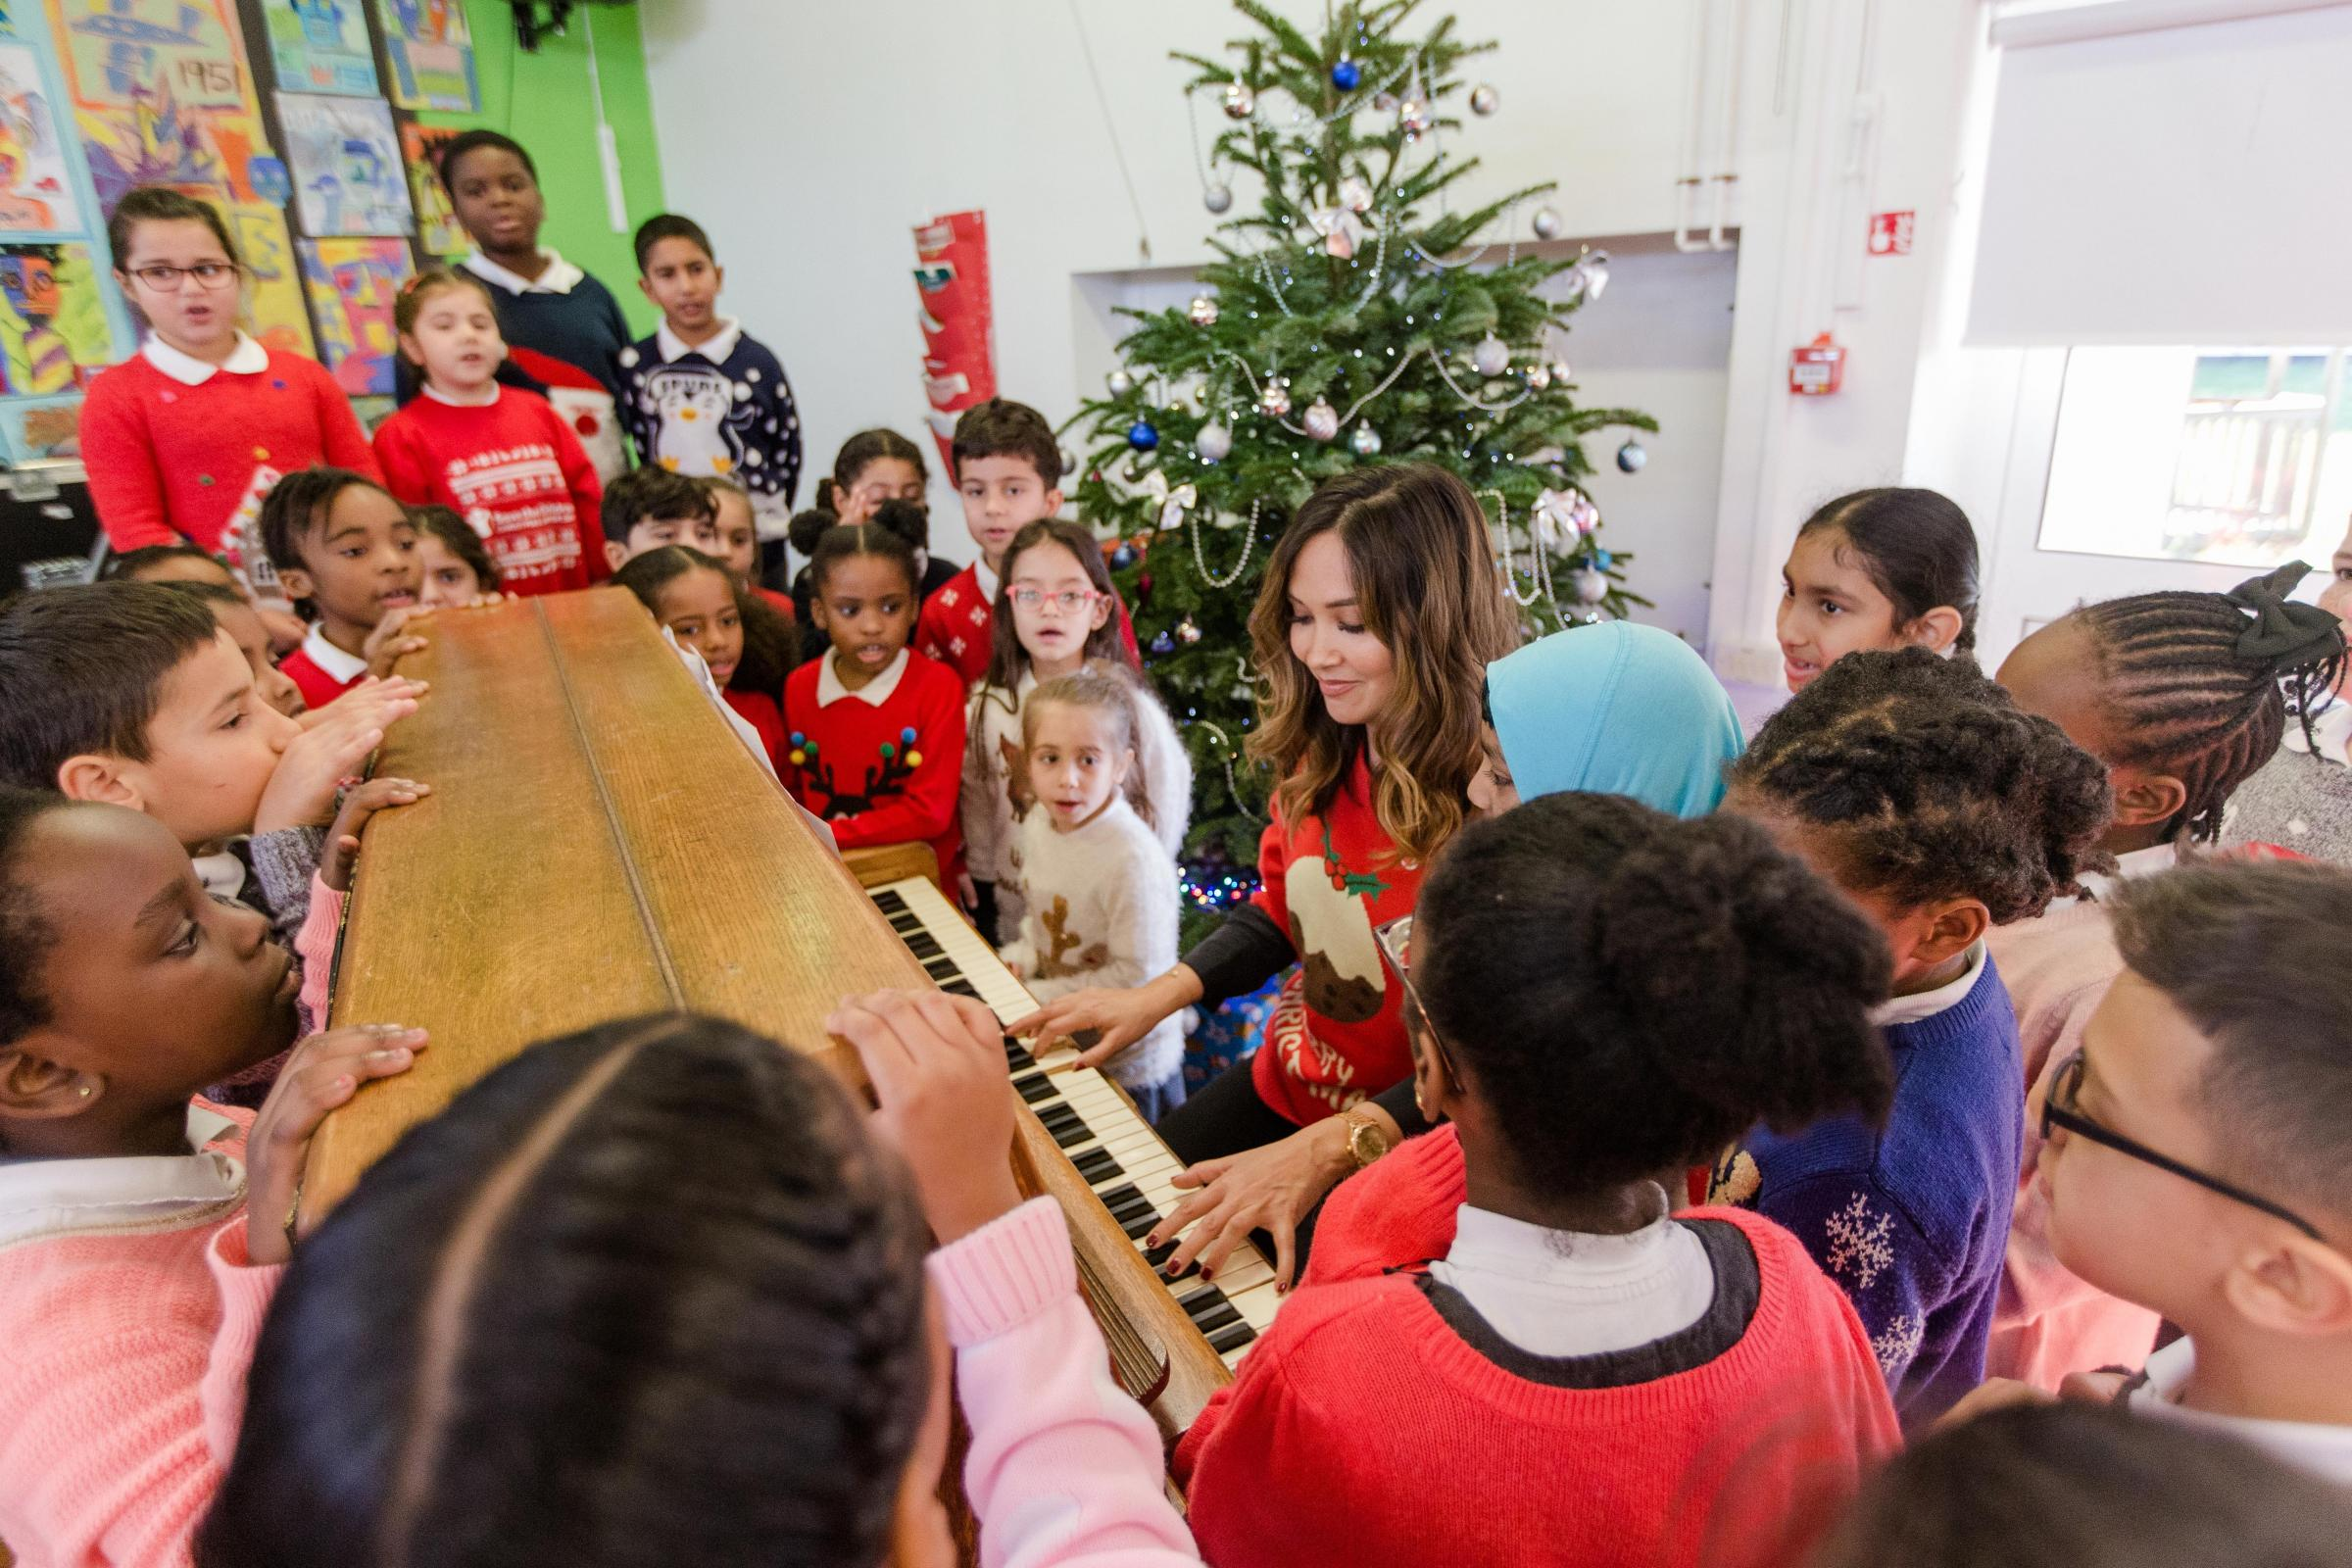 TV and Radio Presenter and Save the Children Ambassador visited a Save the Children Families Connect programme and hosted a Klassy Christmas Jumper Jam with year three pupils at Cuckoo Hall Primary School in Enfield, London, all in celebration of the char